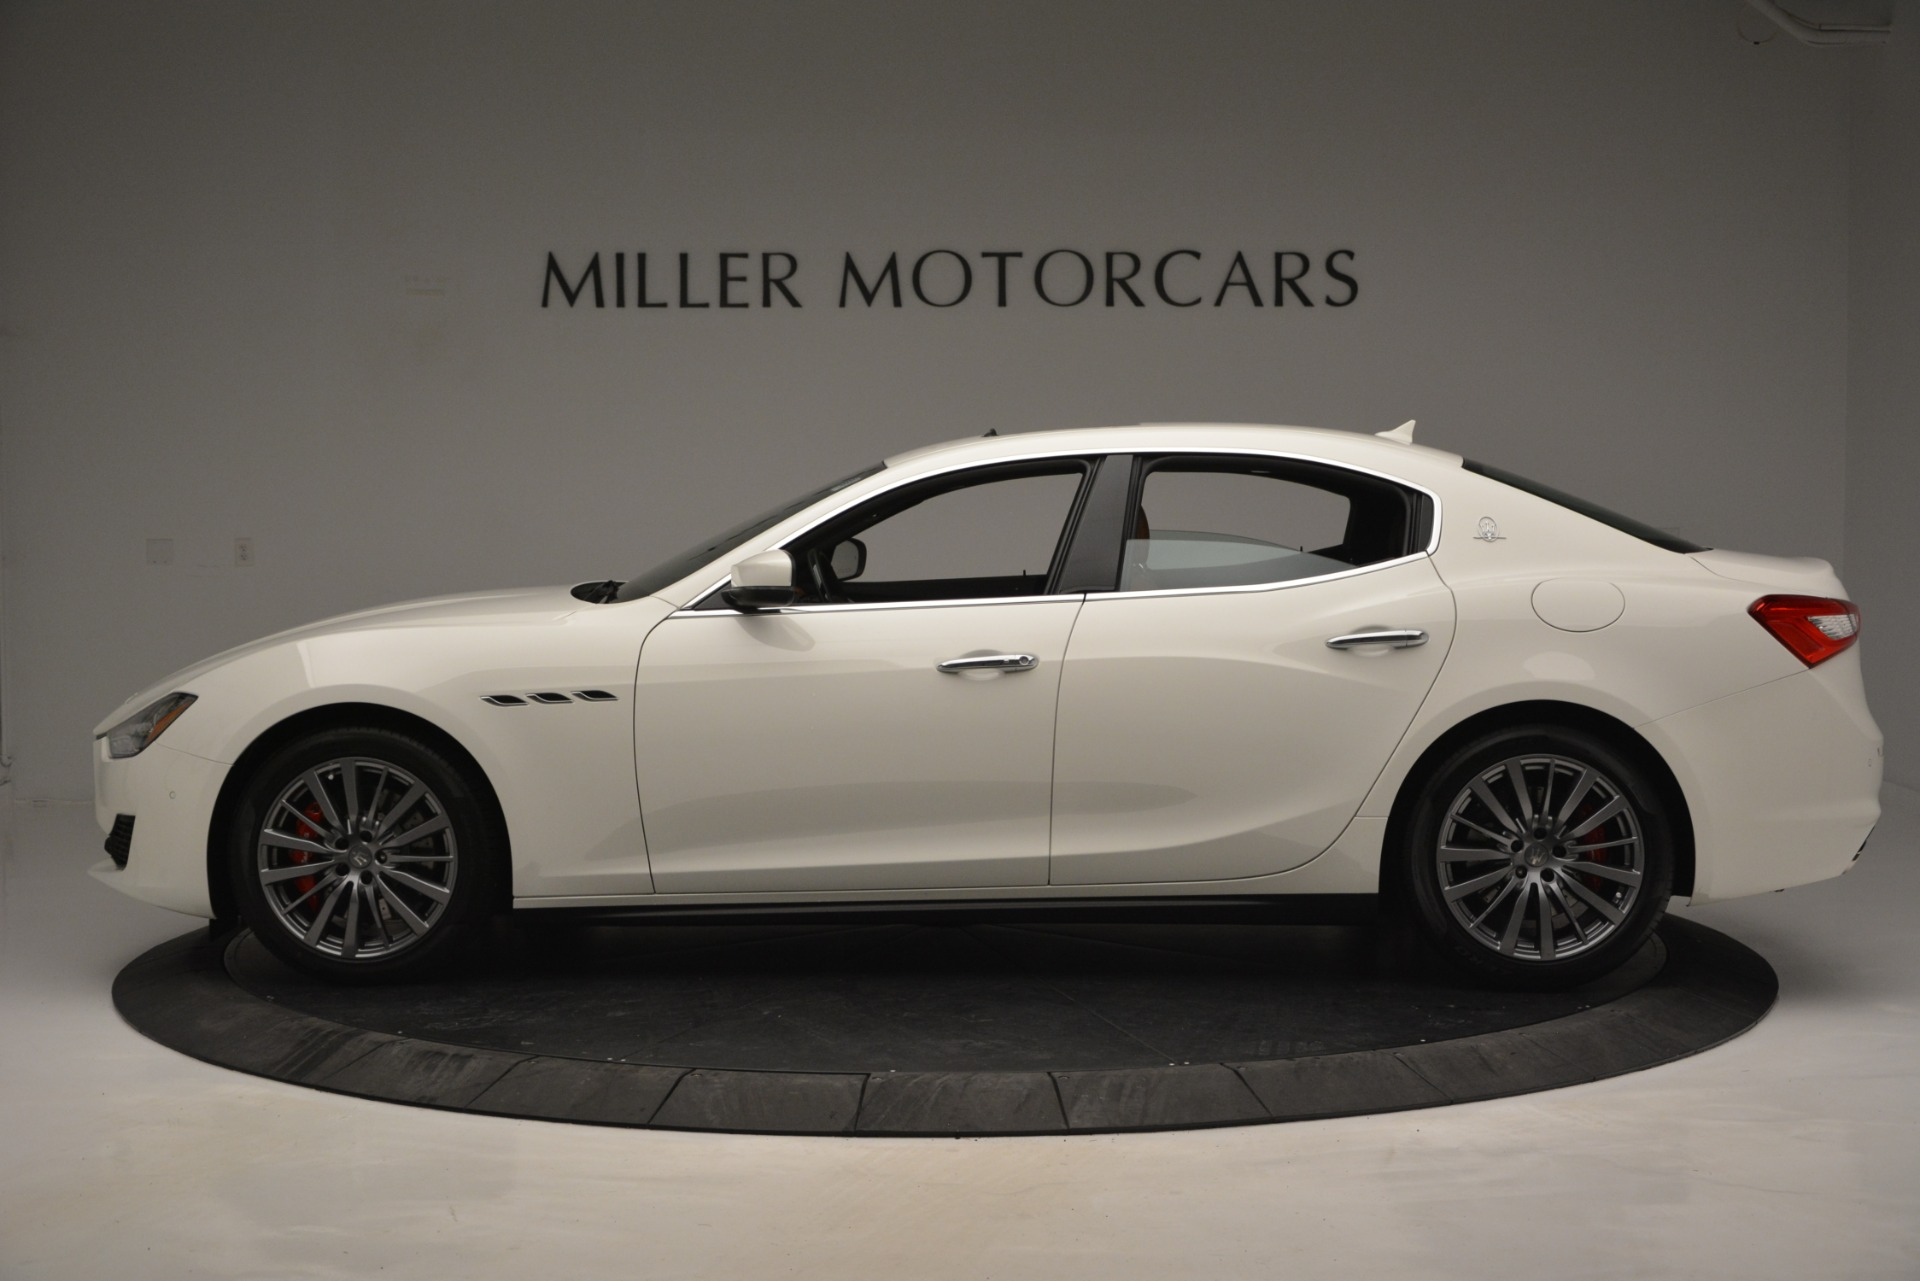 New 2019 Maserati Ghibli S Q4 For Sale In Greenwich, CT. Alfa Romeo of Greenwich, M2245 2795_p4